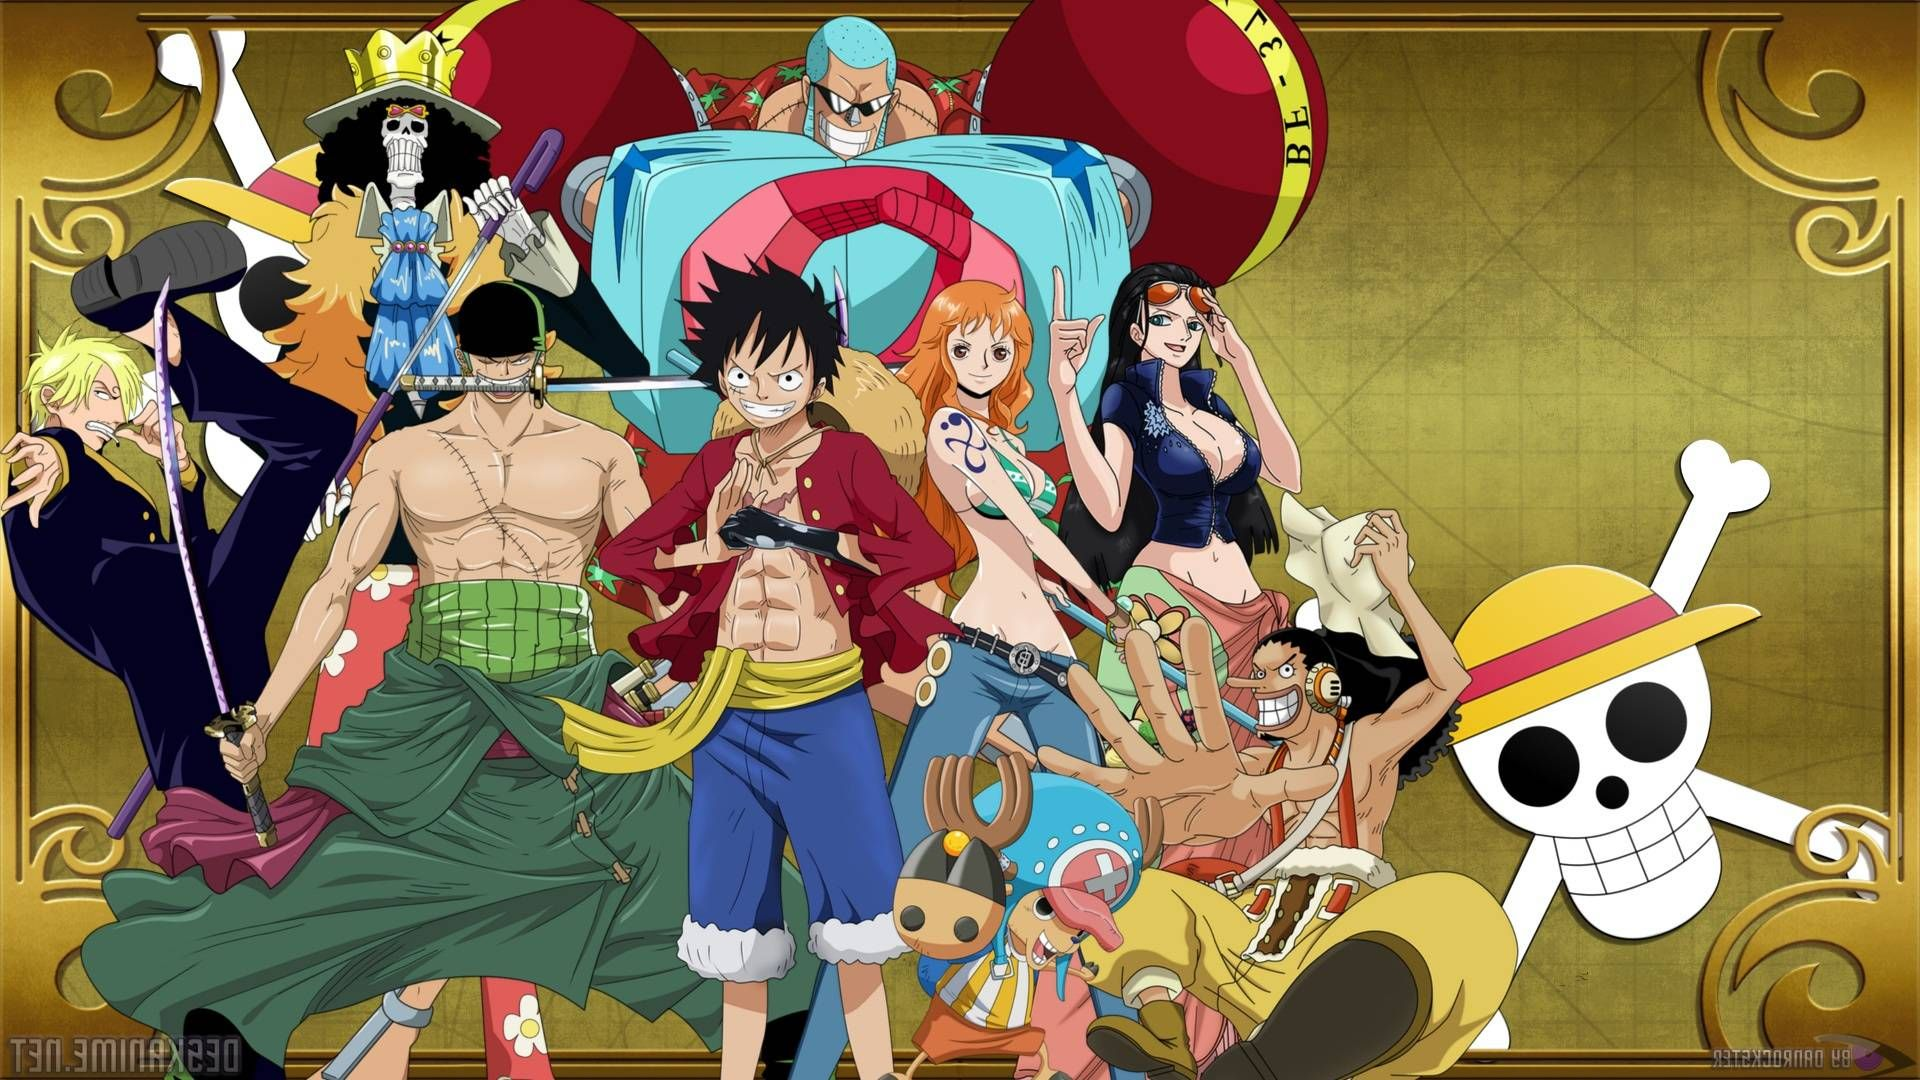 "One Piece À¸"" À¸™à¸«à¸²à¸"" À¸§à¸¢ Google Animasi Dragon Ball Bajak Laut"